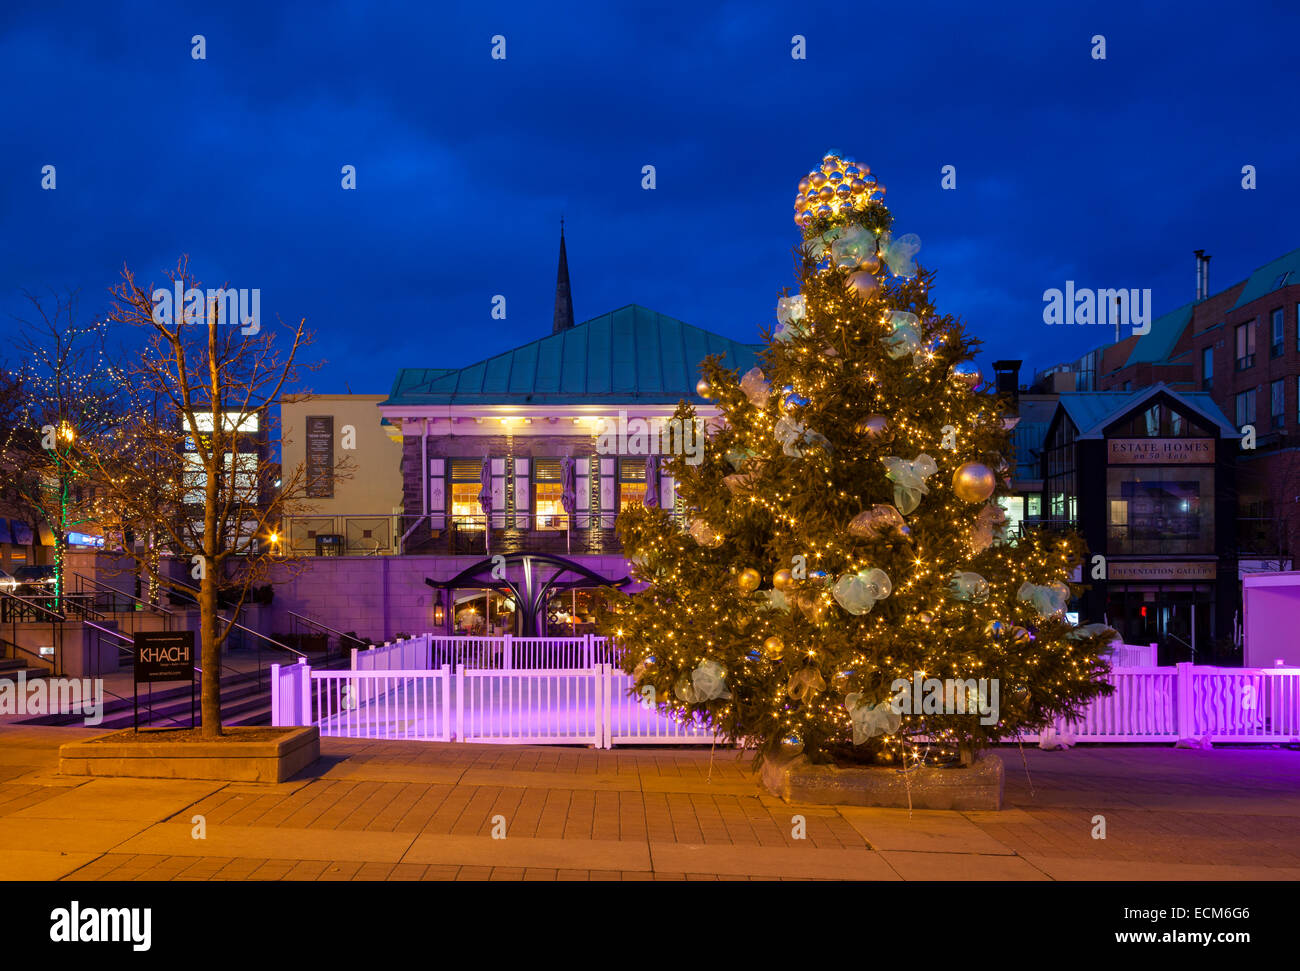 A Christmas Tree In Oakville's Towne Square At Dusk